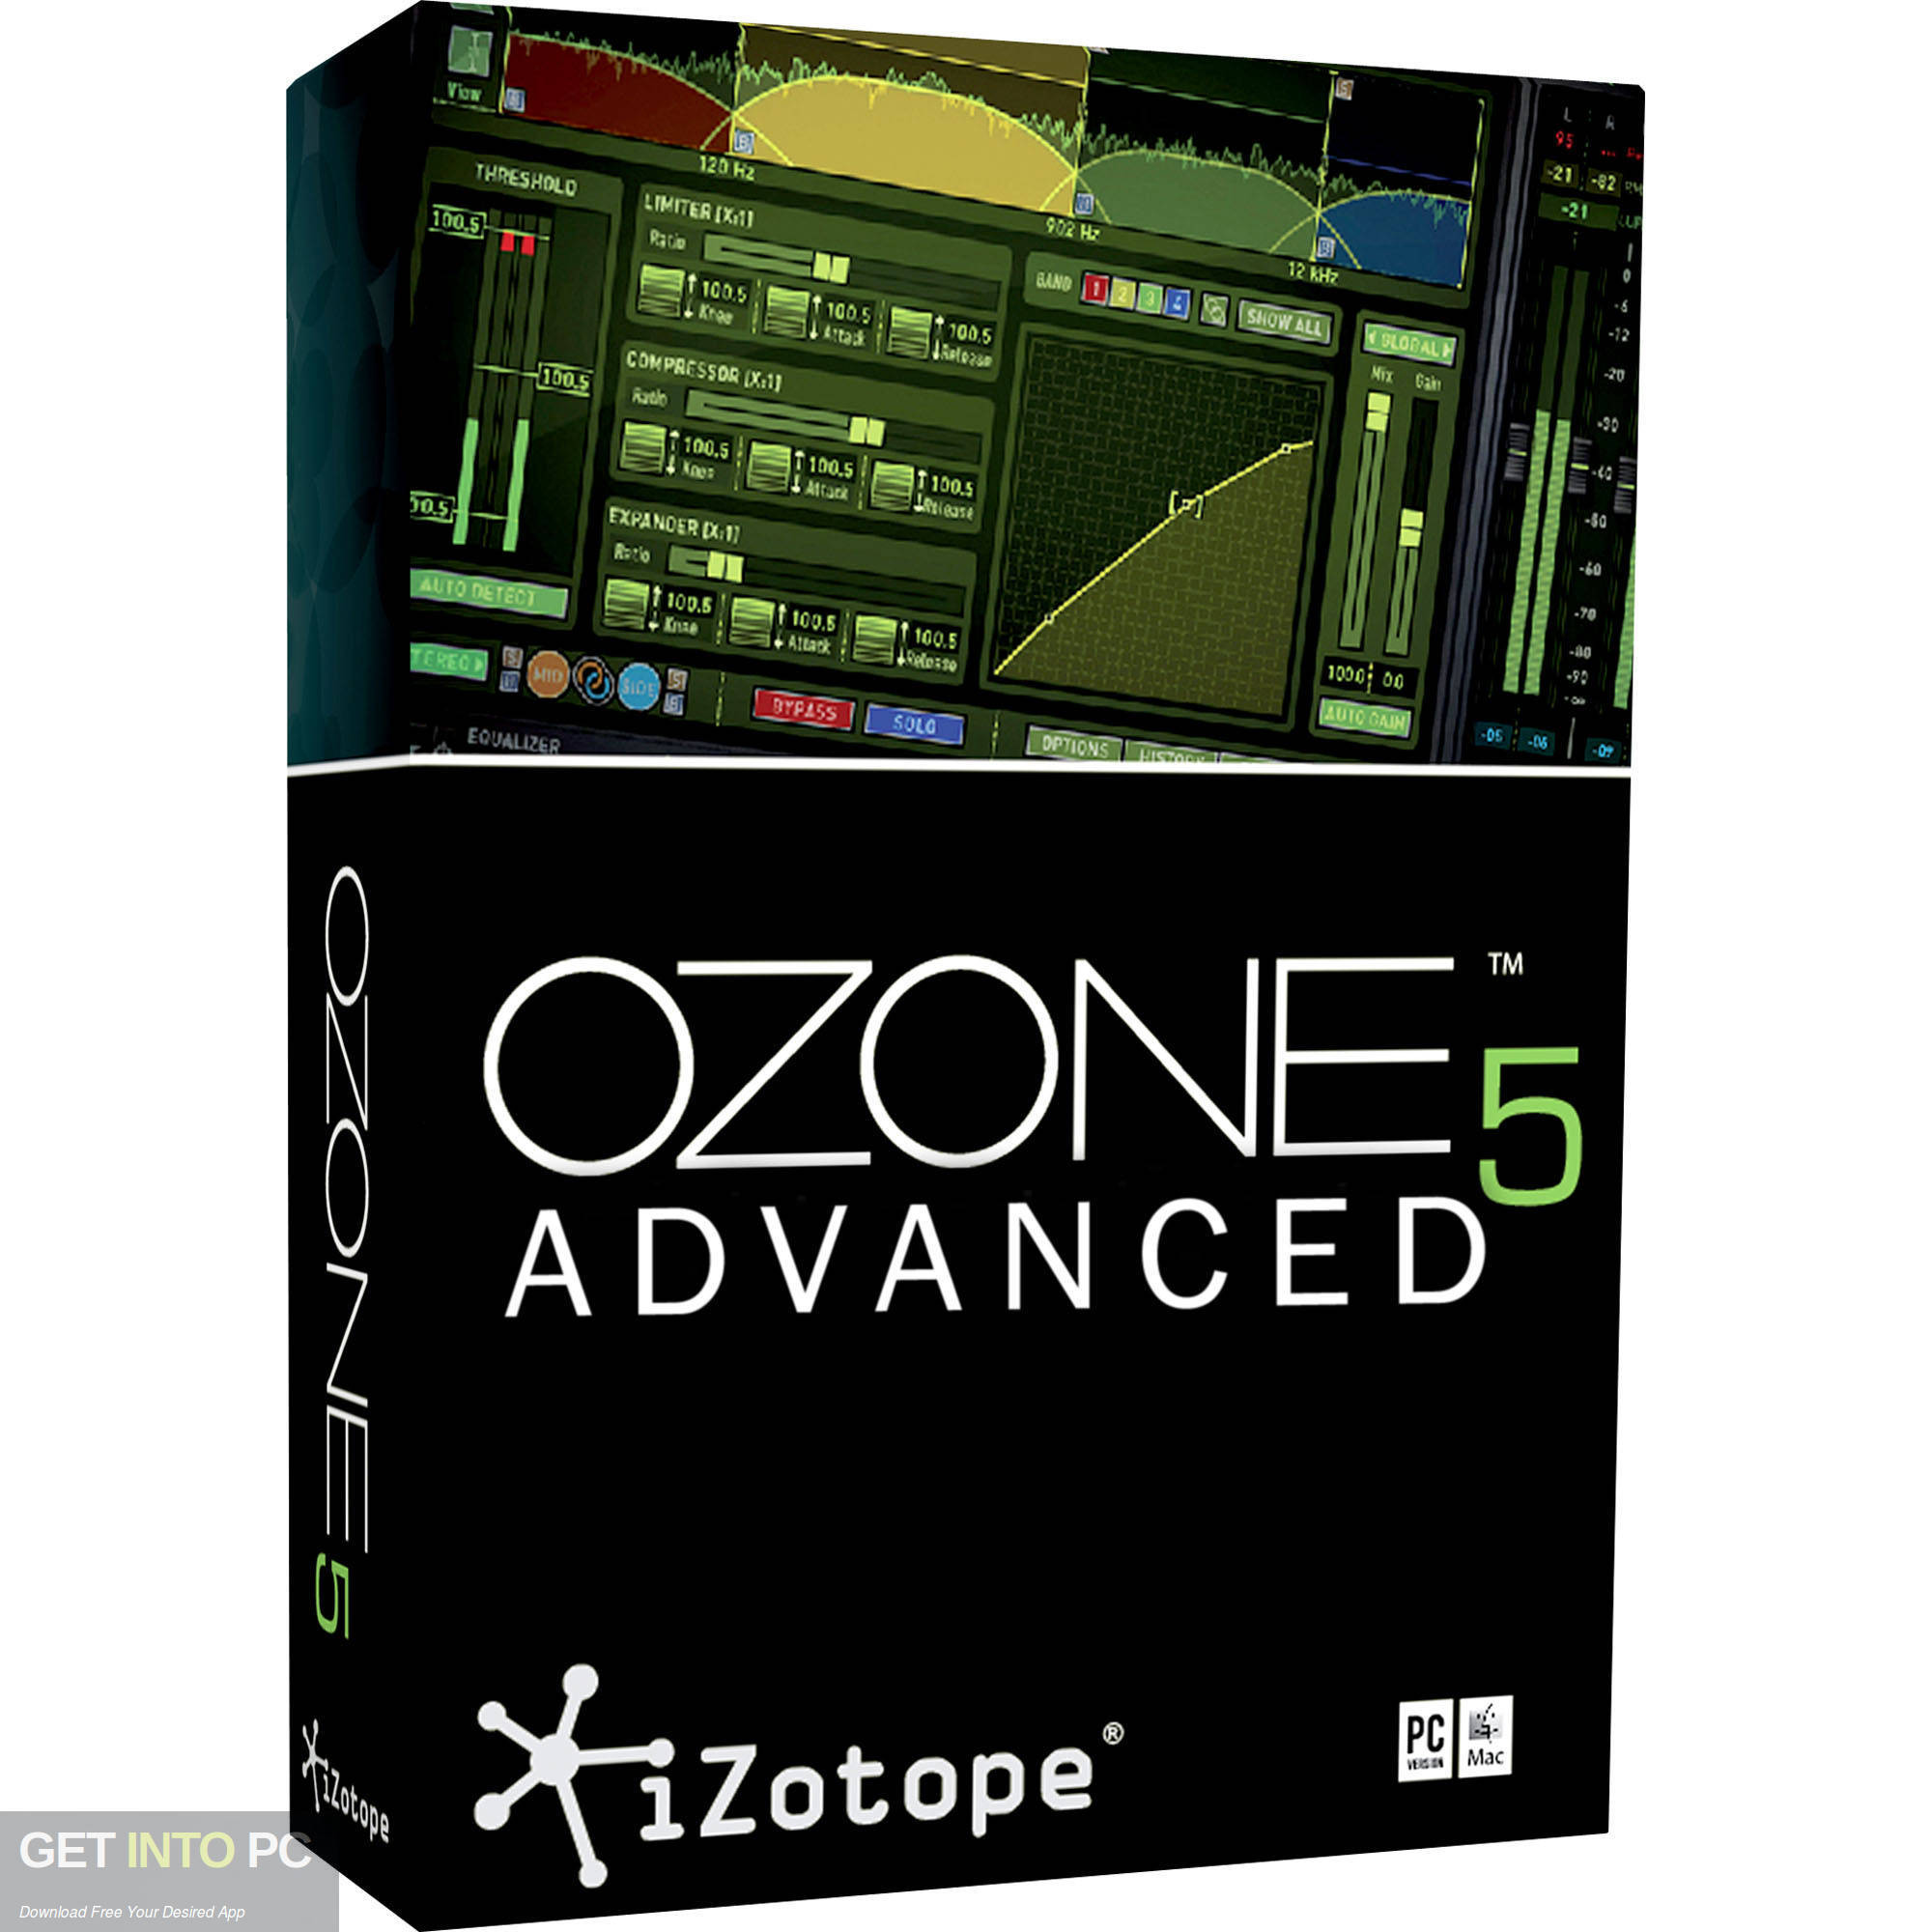 iZotope – Ozone 5 Advanced VST Free Download PcHippo